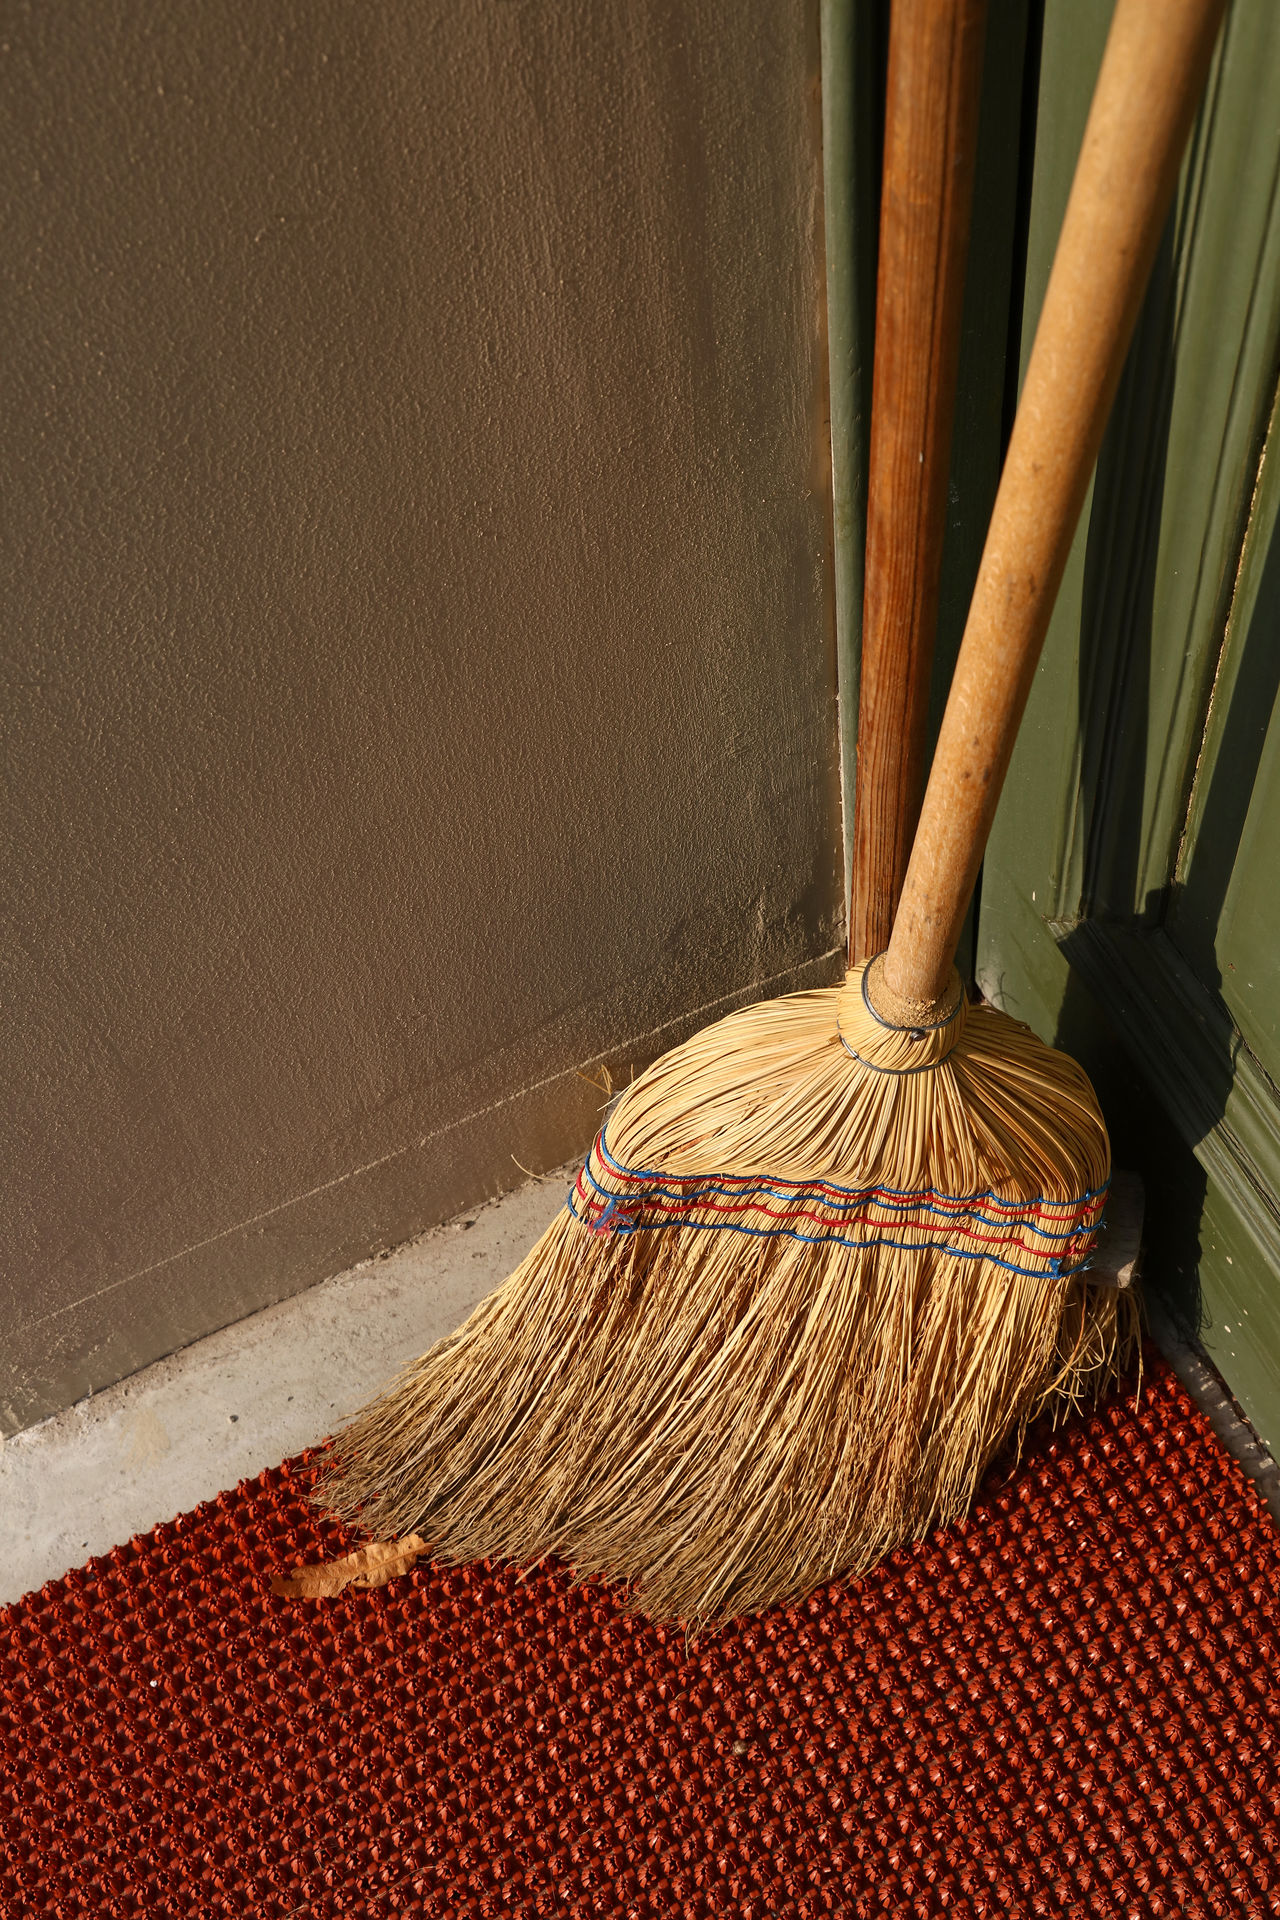 Sweeping brush swab in the corner on the floor Brush Clean Up Cleaning Cleaning My Room Cleaning Up  Close-up Corner Day Floor Home House Indoors  Mopping No People Room Swab Sweeping Sweeping Brush Swob